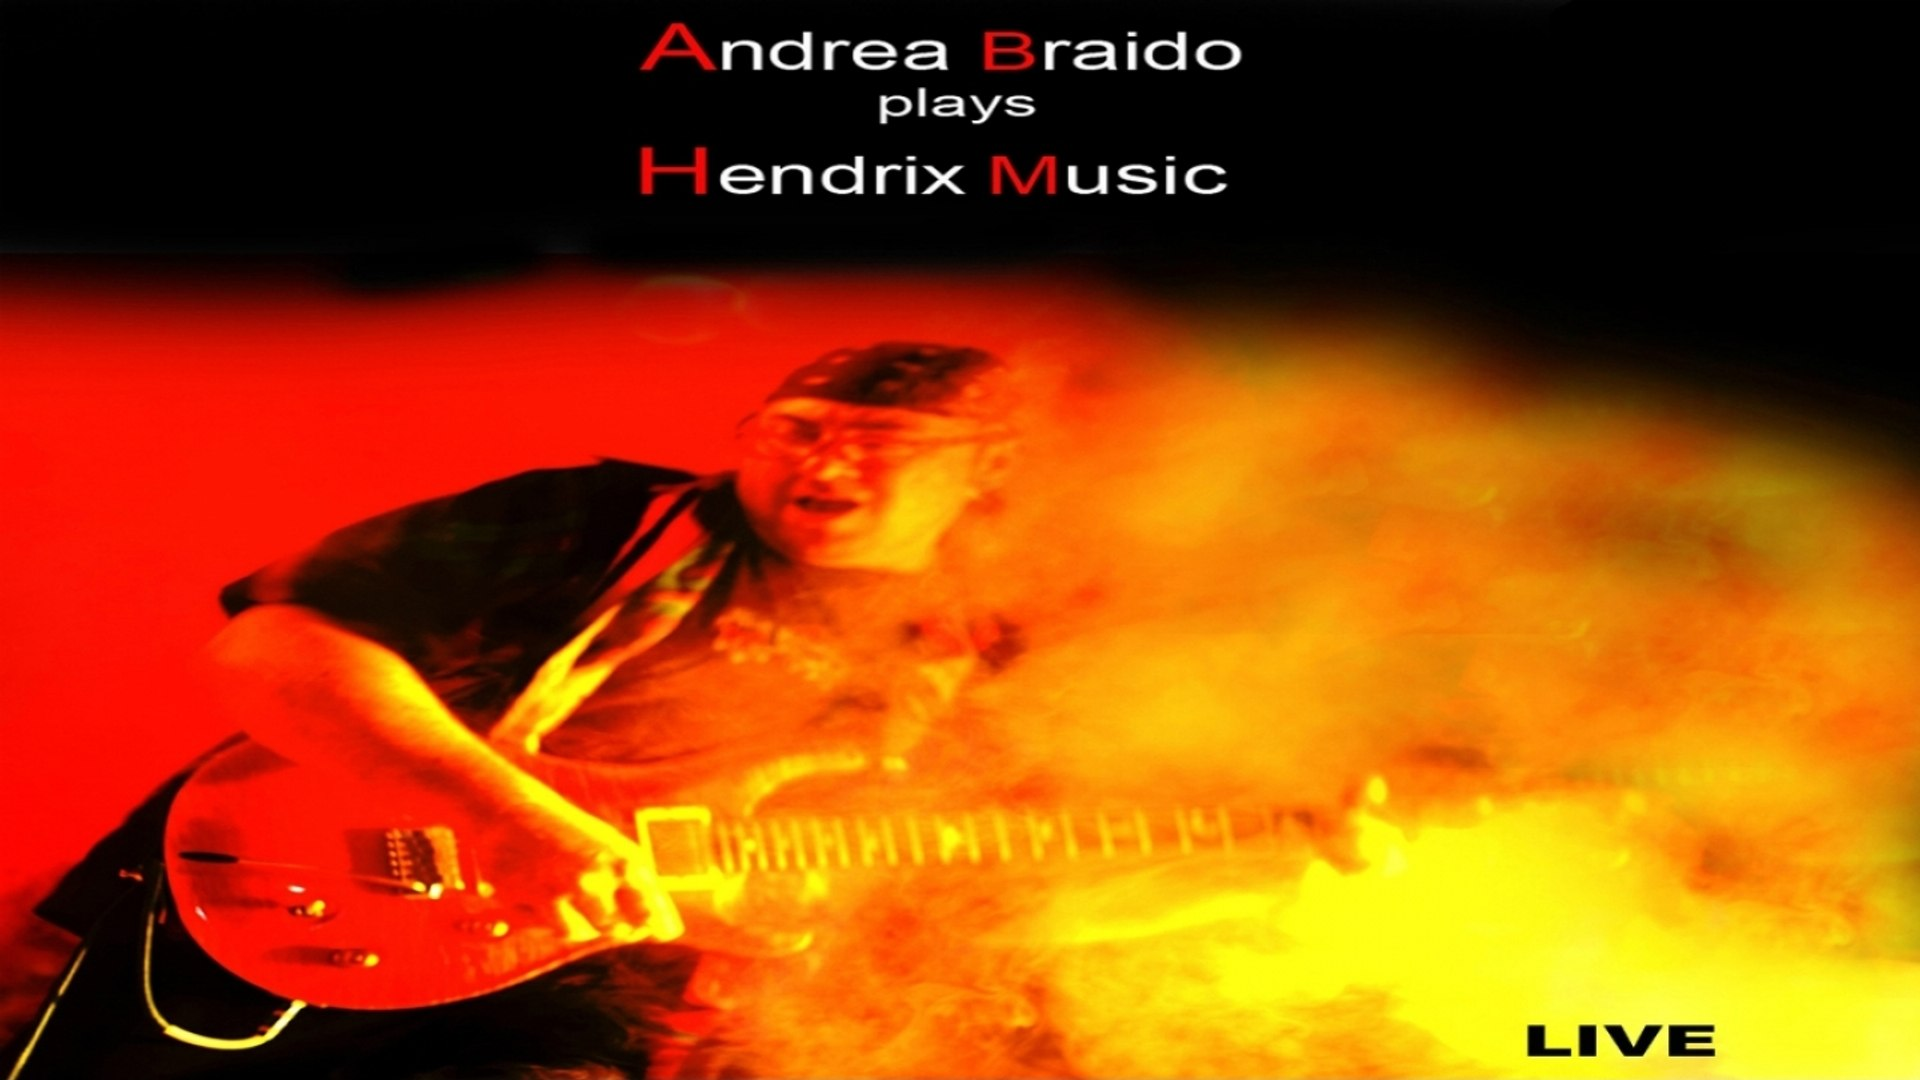 Andrea Braido - Red House - From the Album: Andrea Braido Plays Hendrix Music